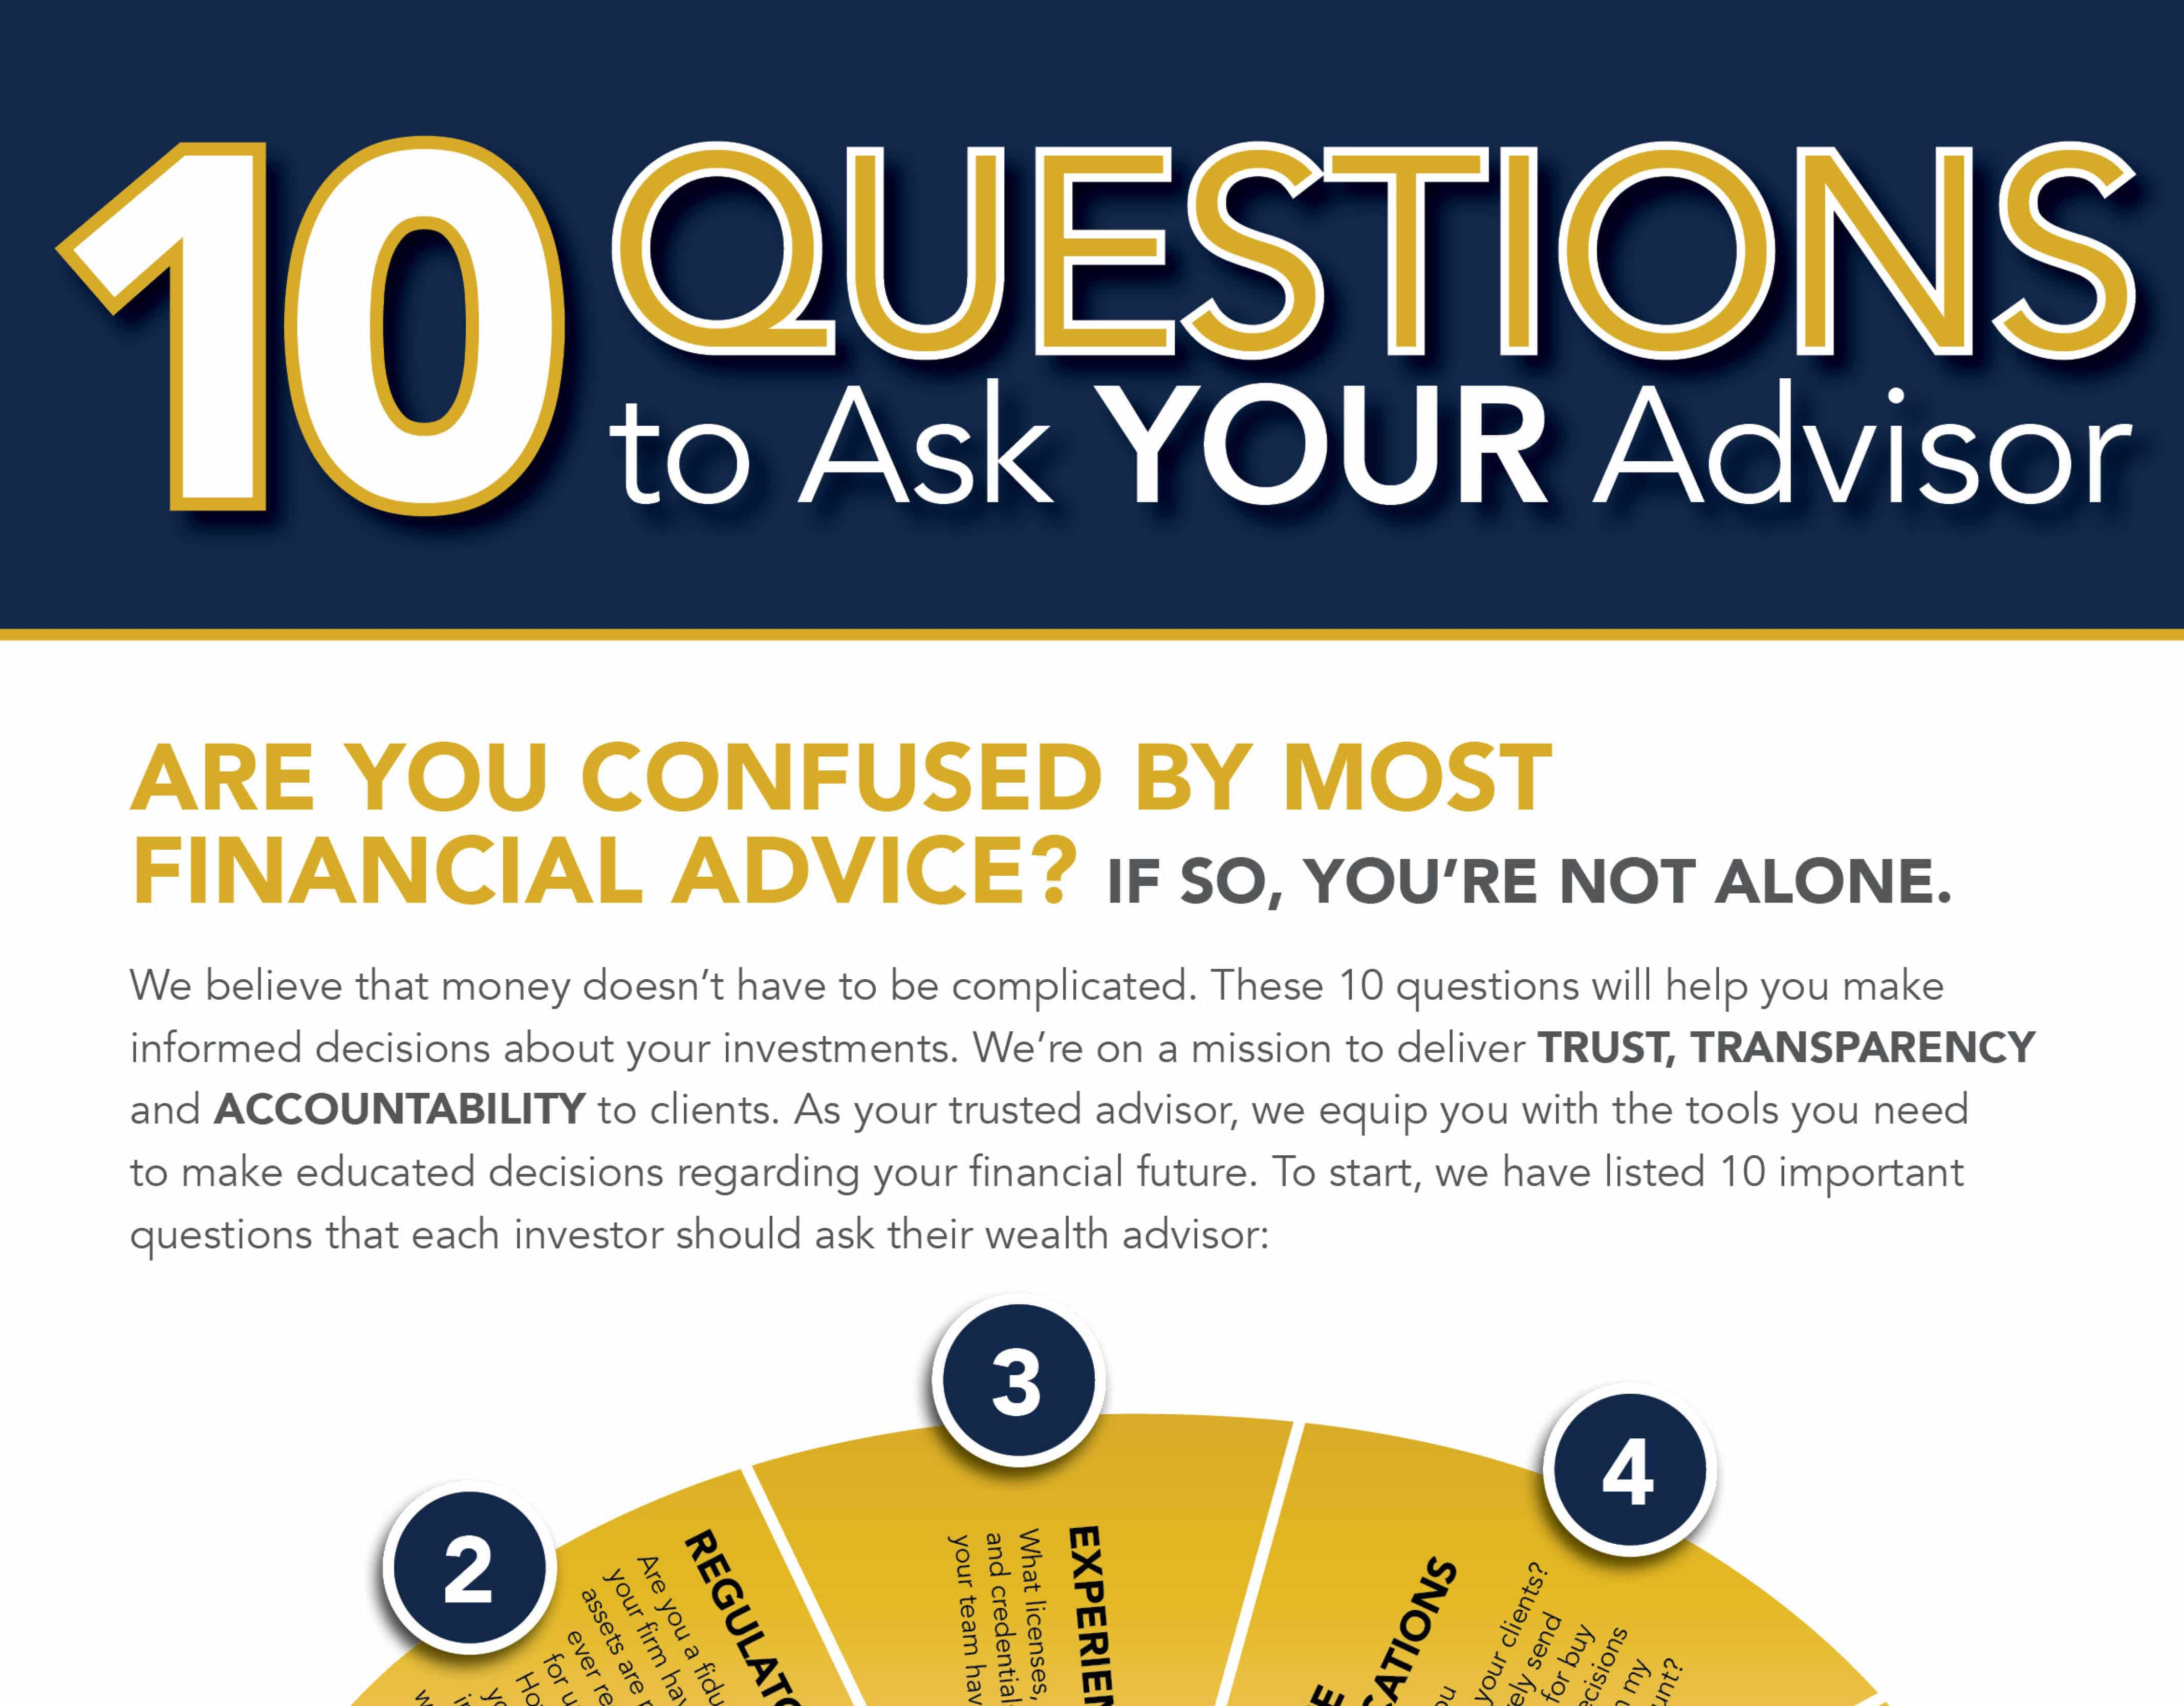 10 Questions to Ask Your Advisor Infographic